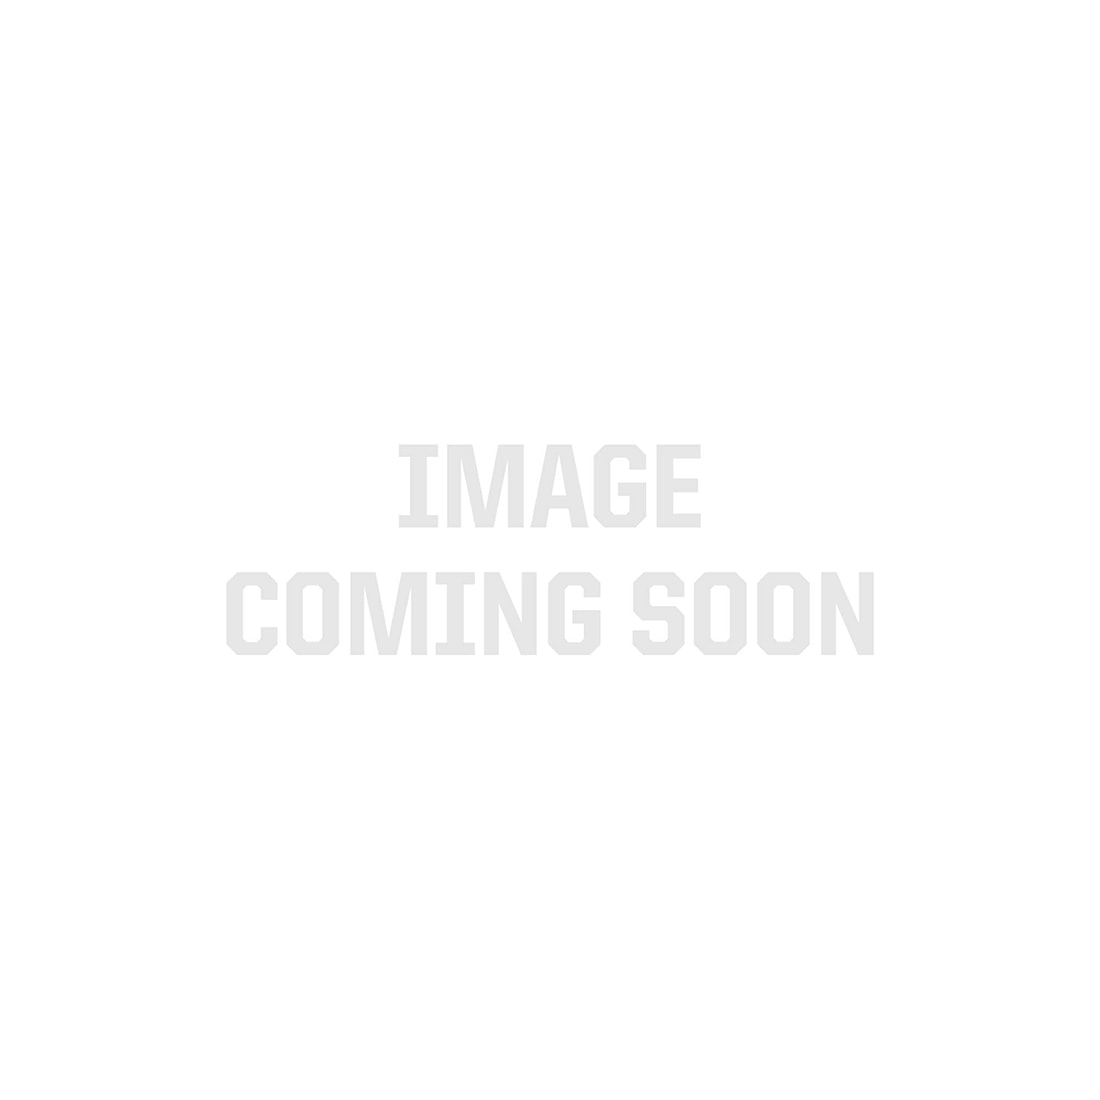 M3mm Color-Rite 50 LED Christmas Light String, Green Wire, 17.3 feet long, 4 in. spacing (Multi-Color: Red, Green, Blue, Yellow, Purple)